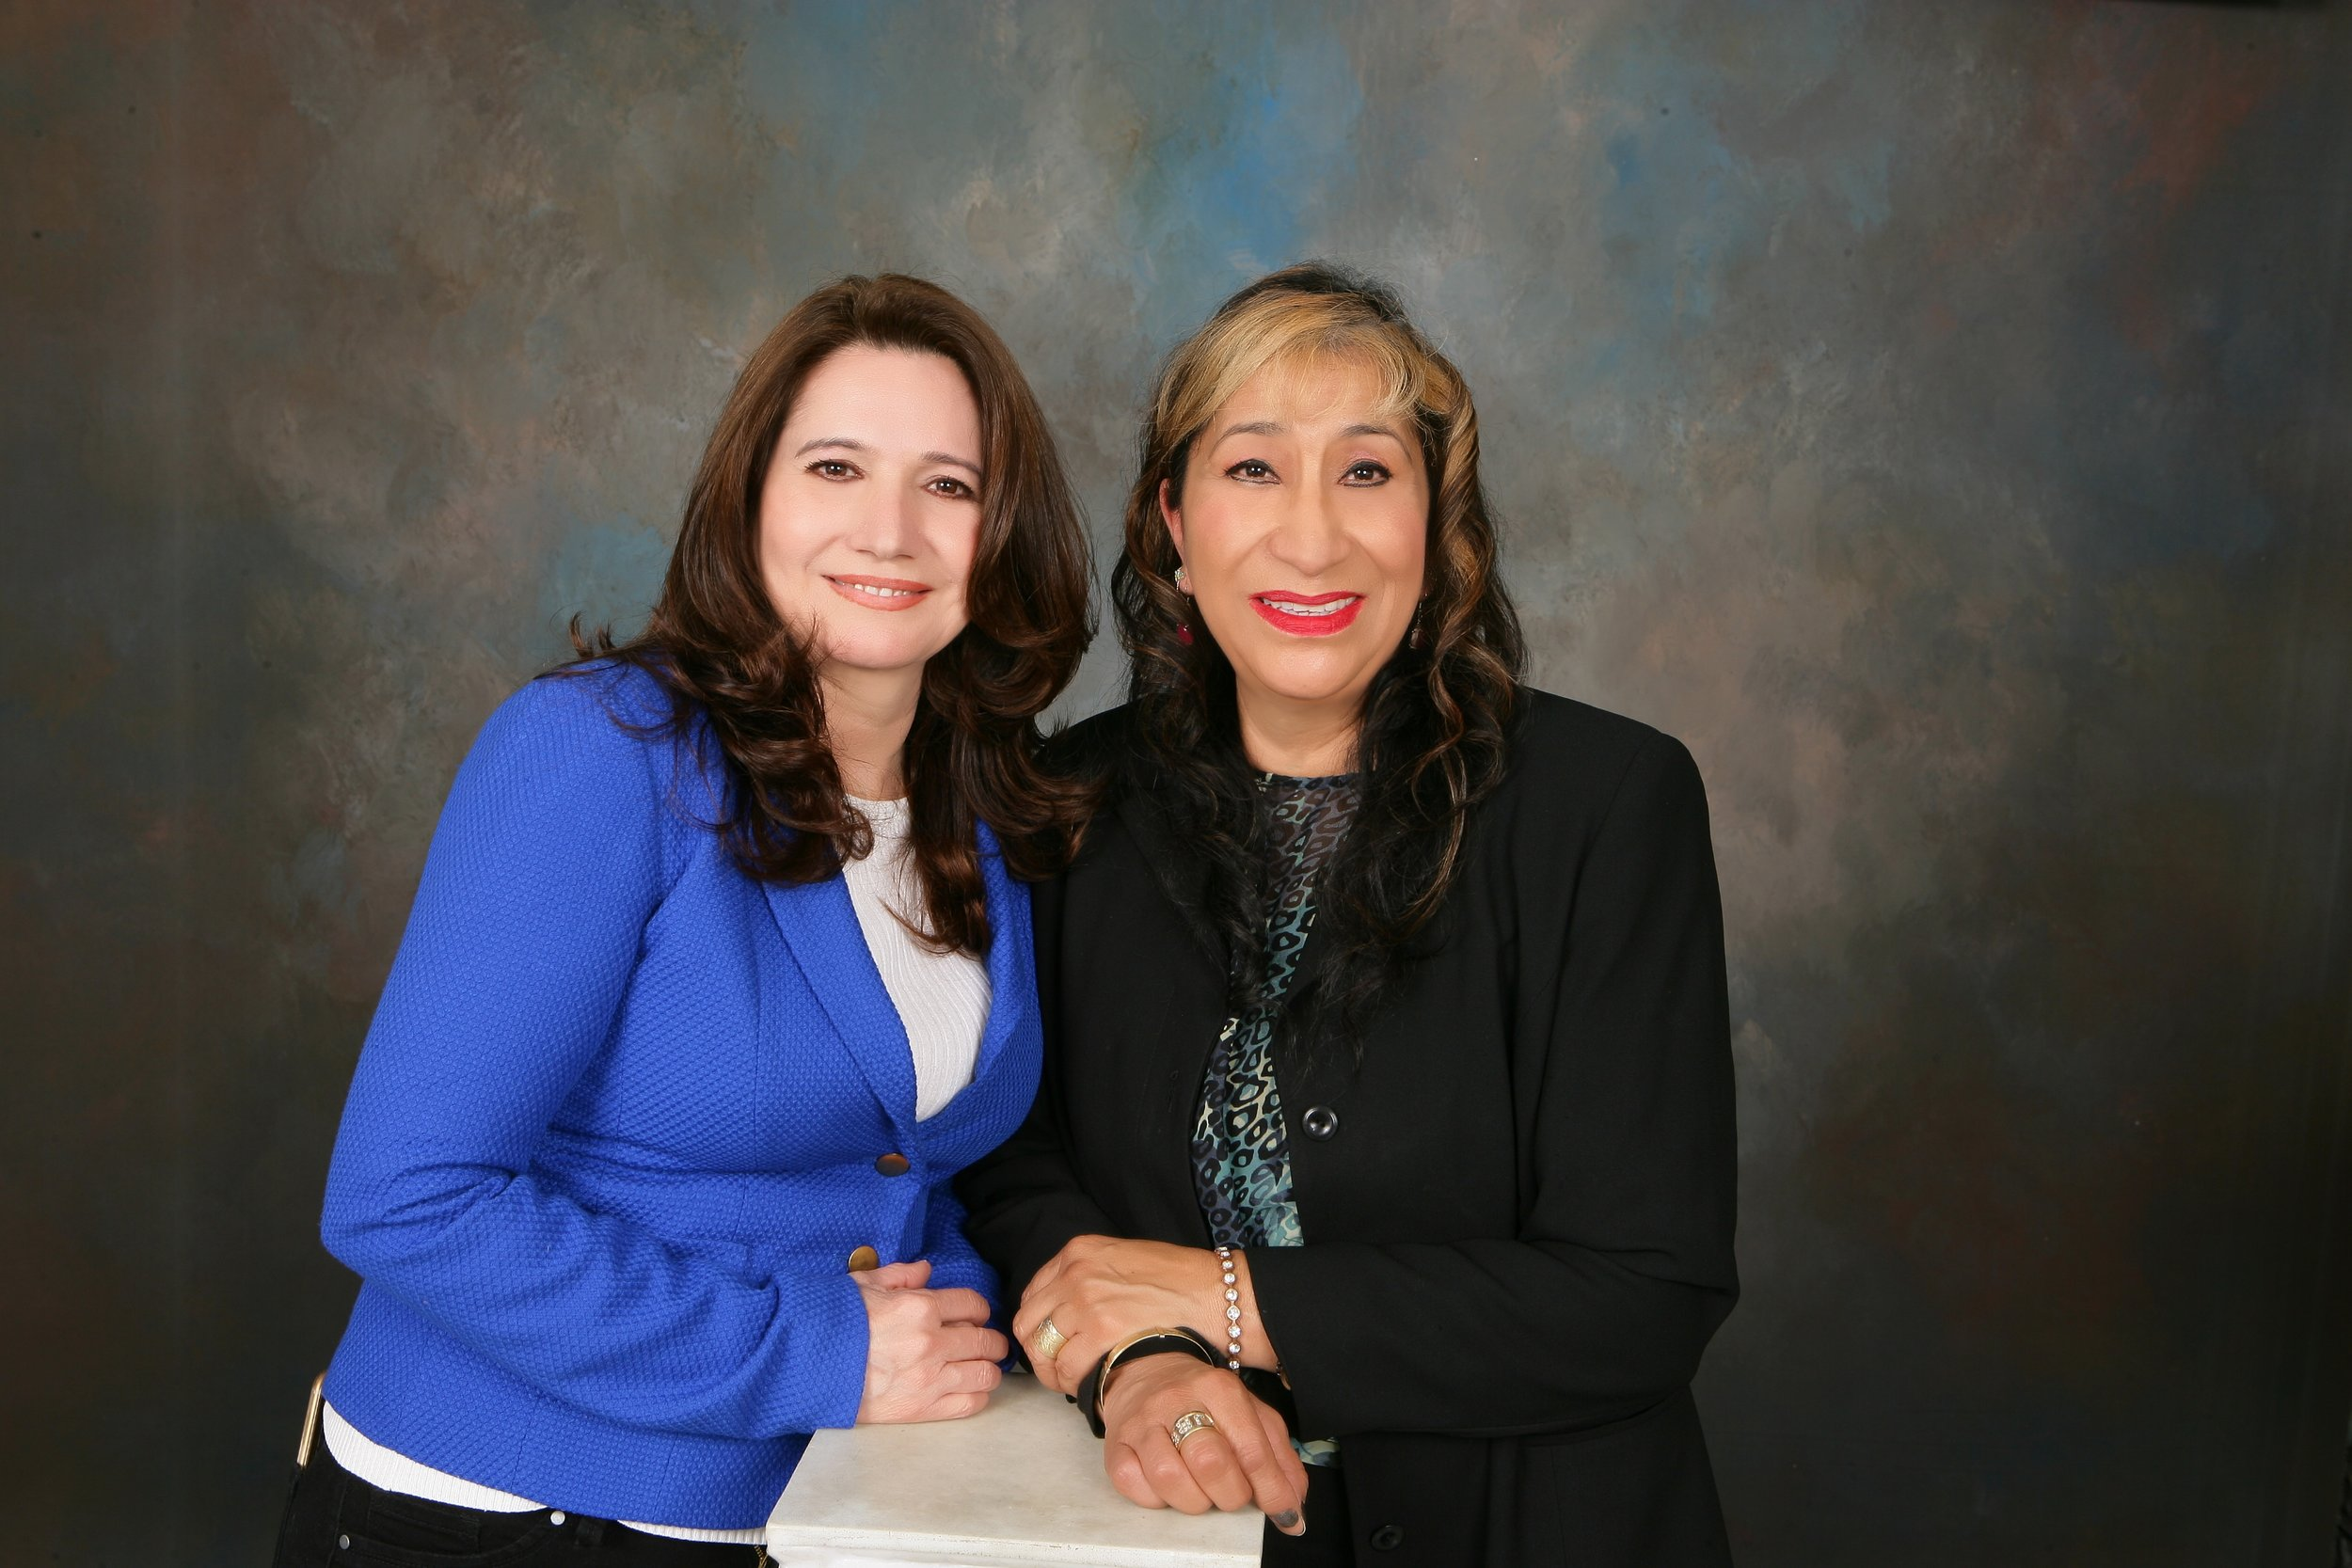 We are happy to announce that Realtor Alicia Flores has joined the IRES team. Alicia brings over 14 years of experience with a wealth of knowledge in the real estate industry. As well as great customer service with her own assistant and outstanding work ethic. She is also very committed to helping here clients achieve their real estate goal. Welcome to the IRES team Alicia!